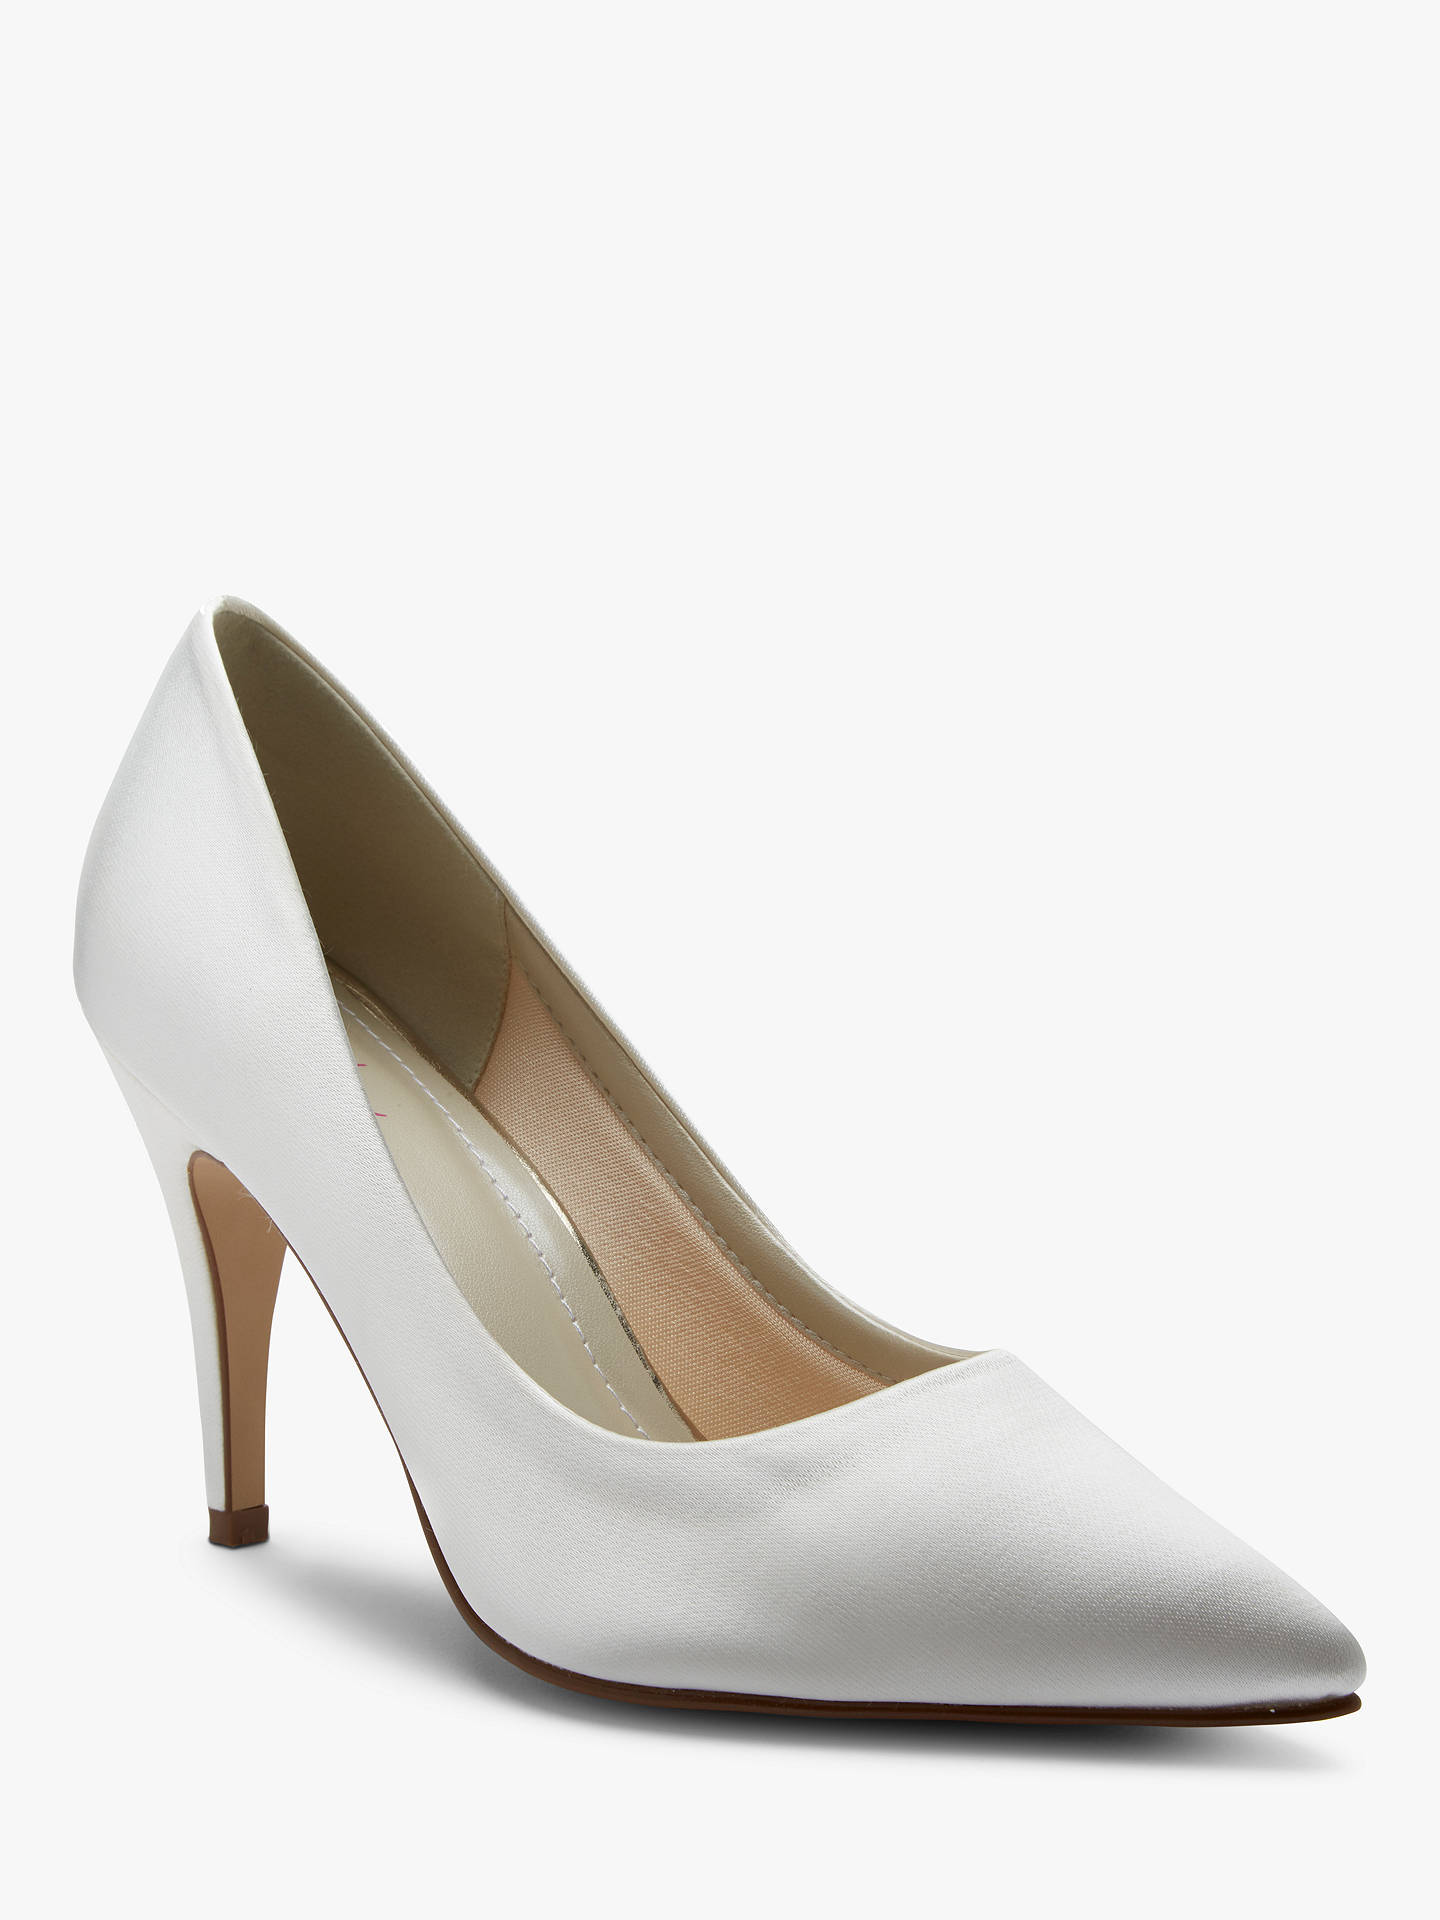 BuyRainbow Club Vivian Satin Point Toe Court Shoes, Ivory, 3 Online at johnlewis.com